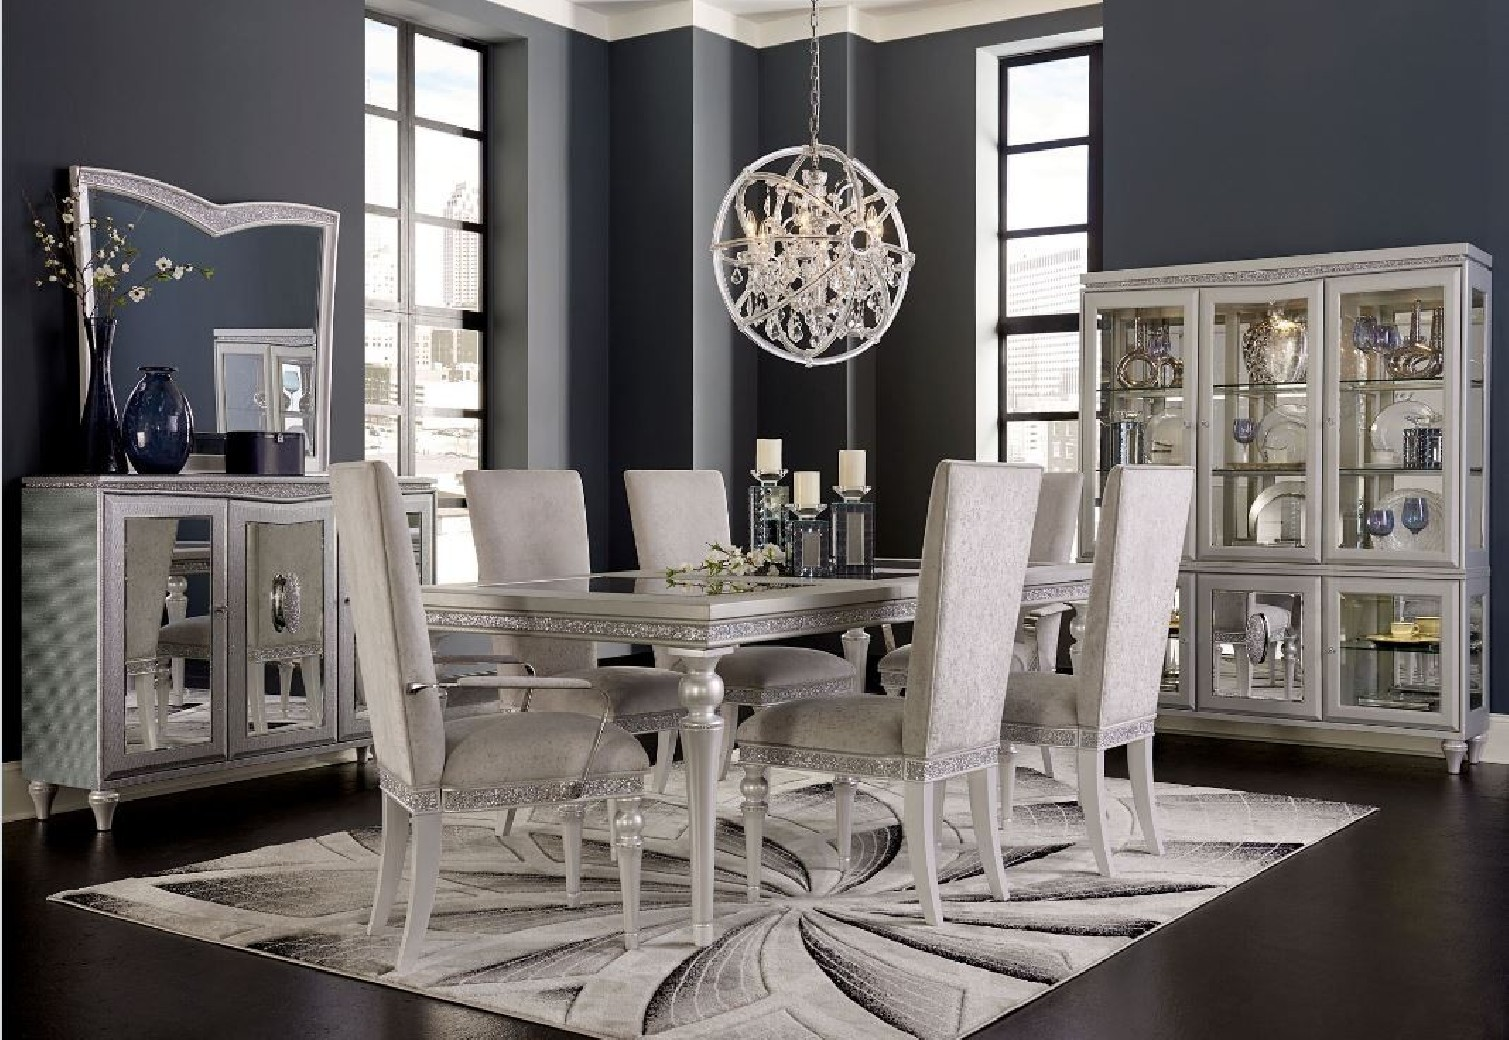 https://themansionfurniture.com/22174-large_default/aico-melrose-plaza-dining-room-set-by-michael-amini-jane-seymor.jpg